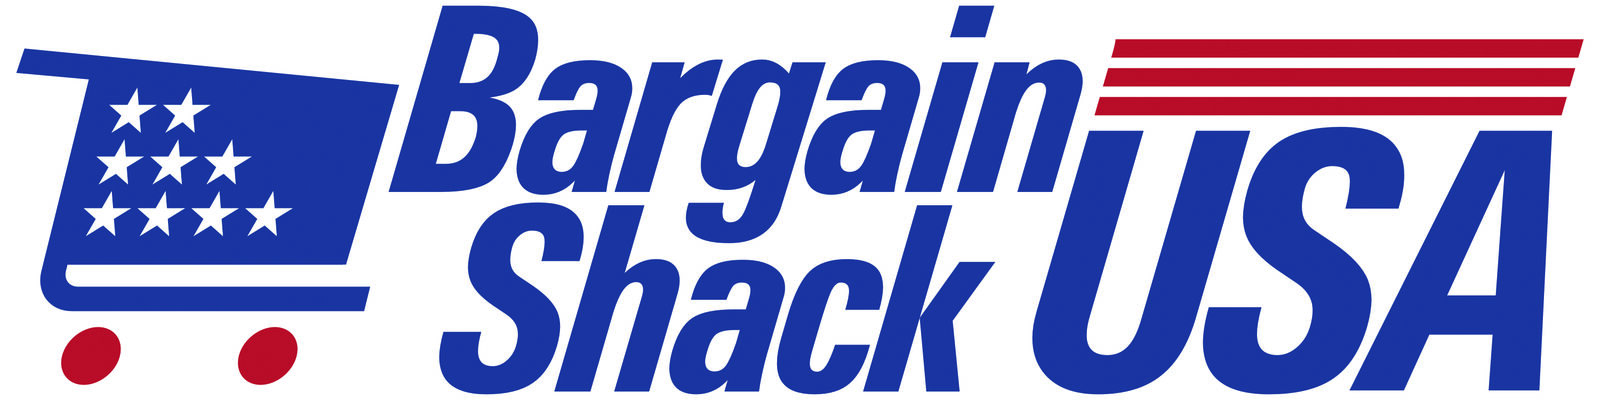 Bargain Shack USA